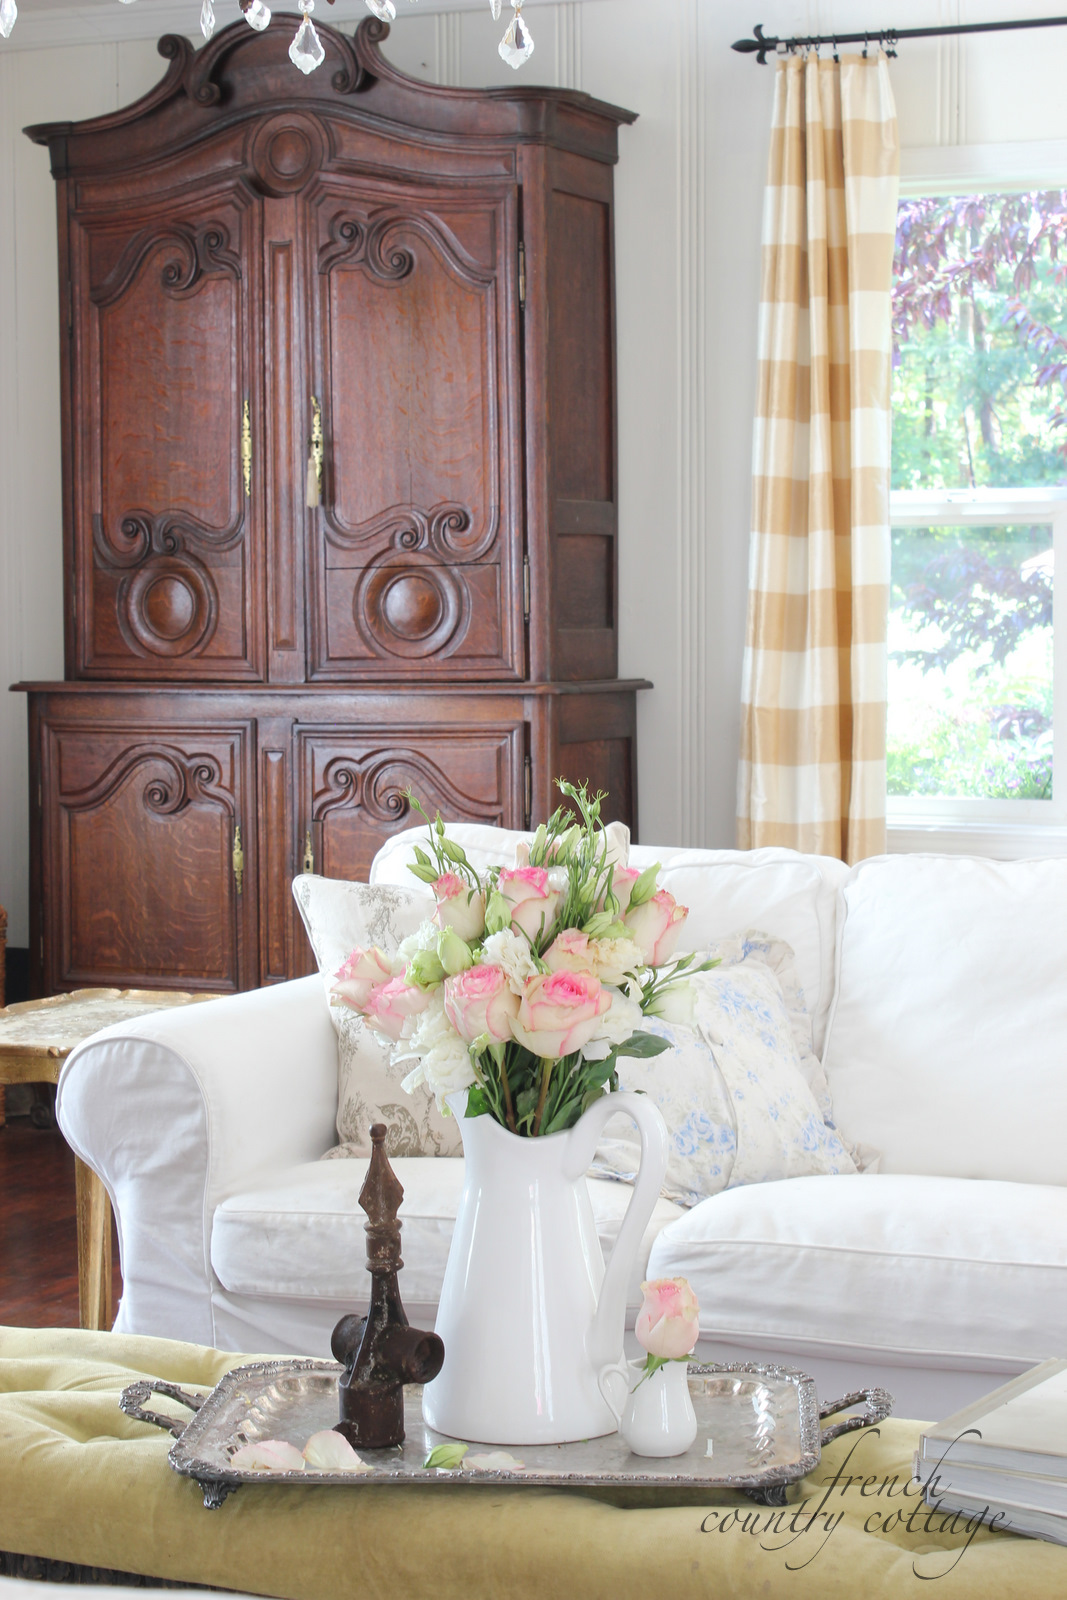 White Slipcovers French Country Cottage